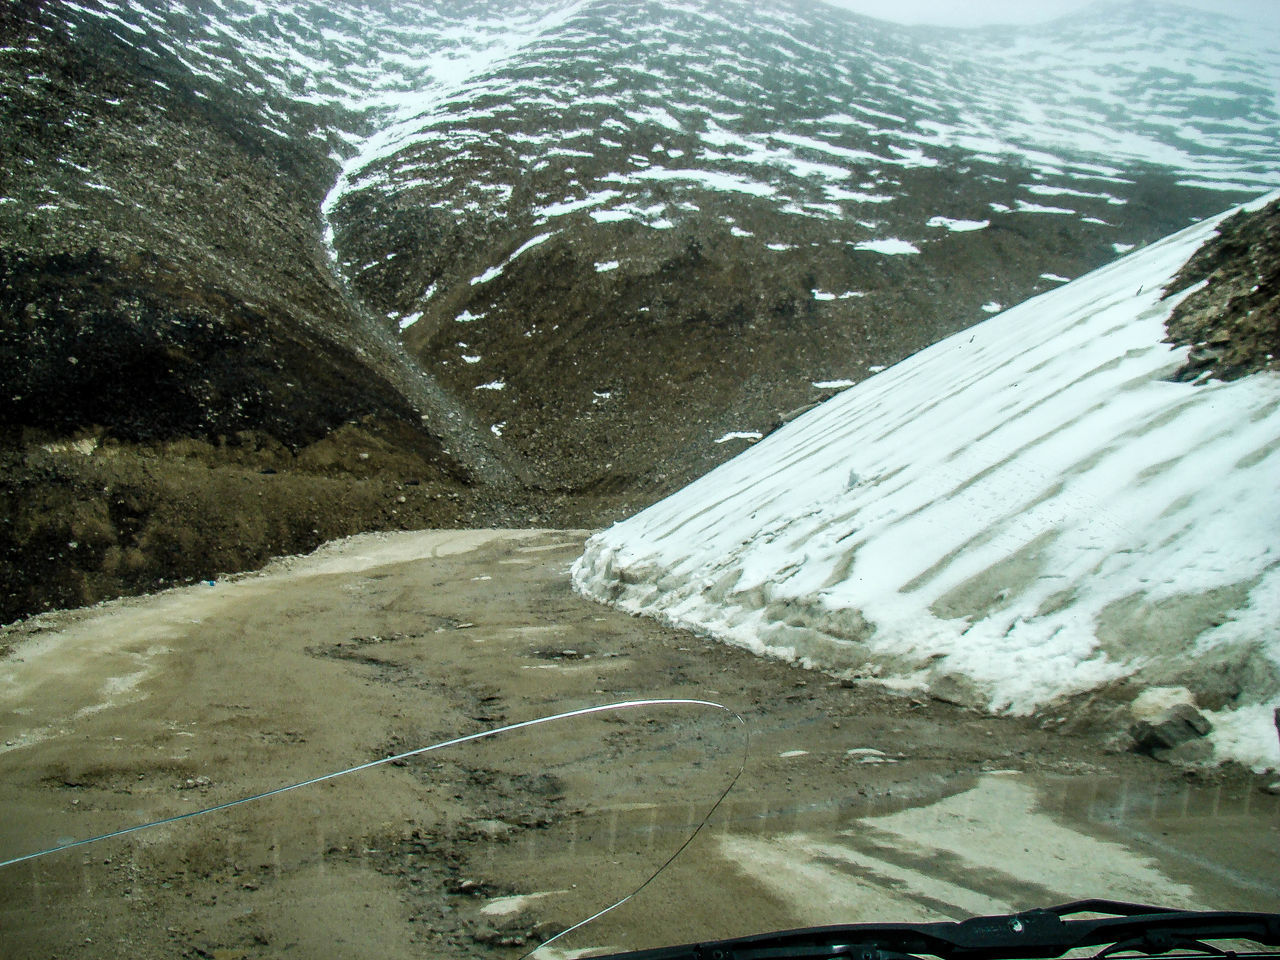 water, day, nature, cold temperature, snow, no people, outdoors, winter, road, sea, beach